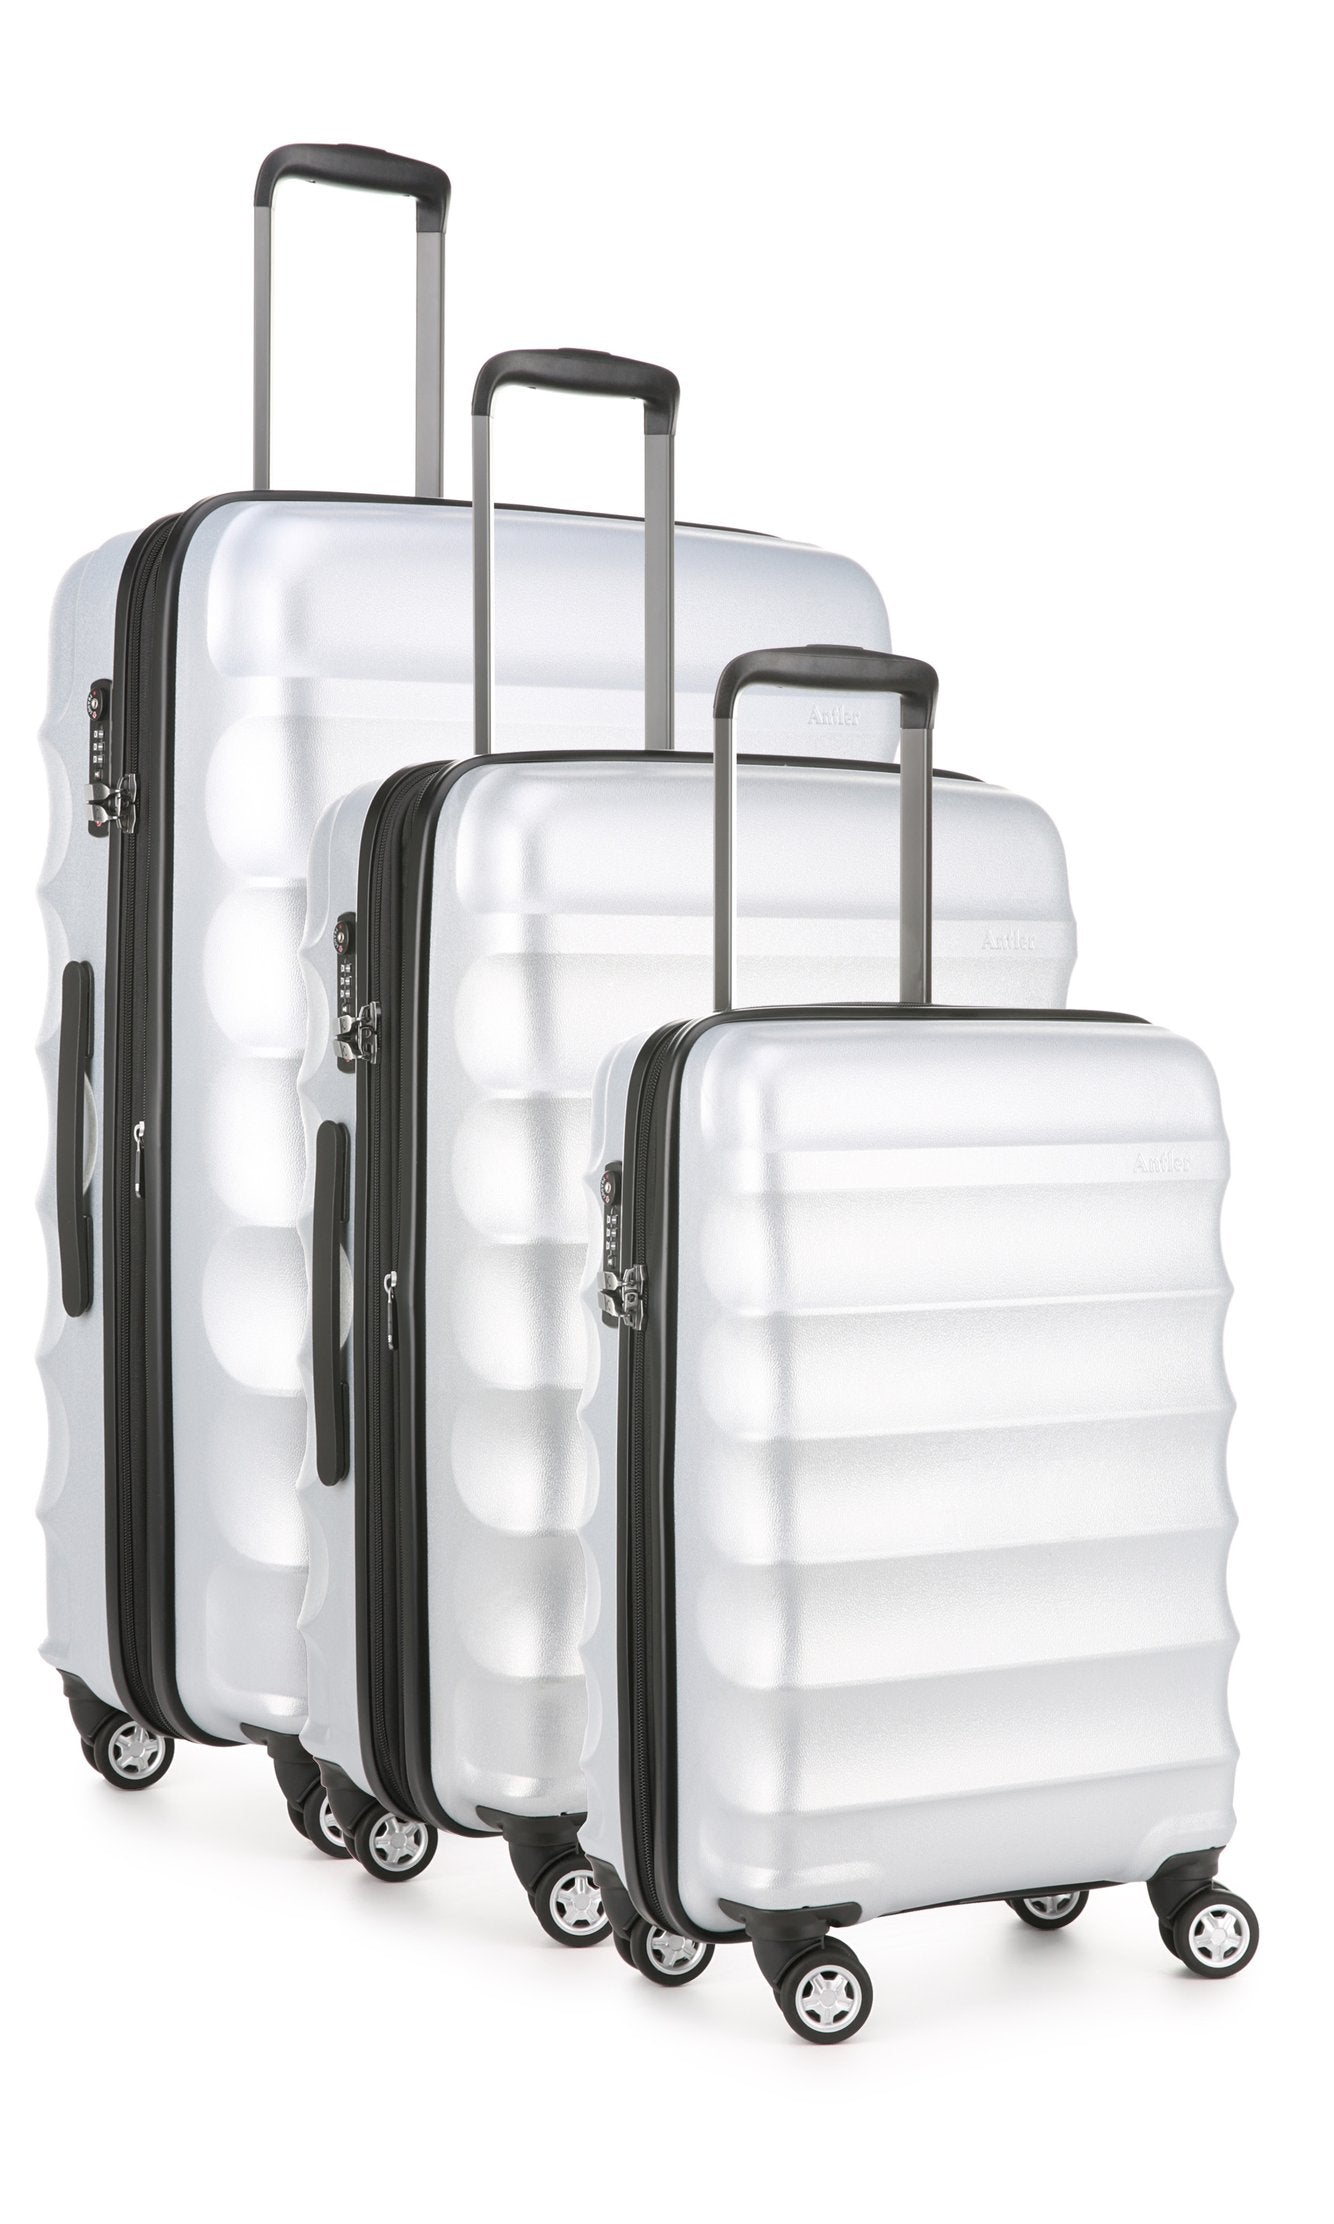 Antler Juno Metallic Suitcase Set of 3 in Silver